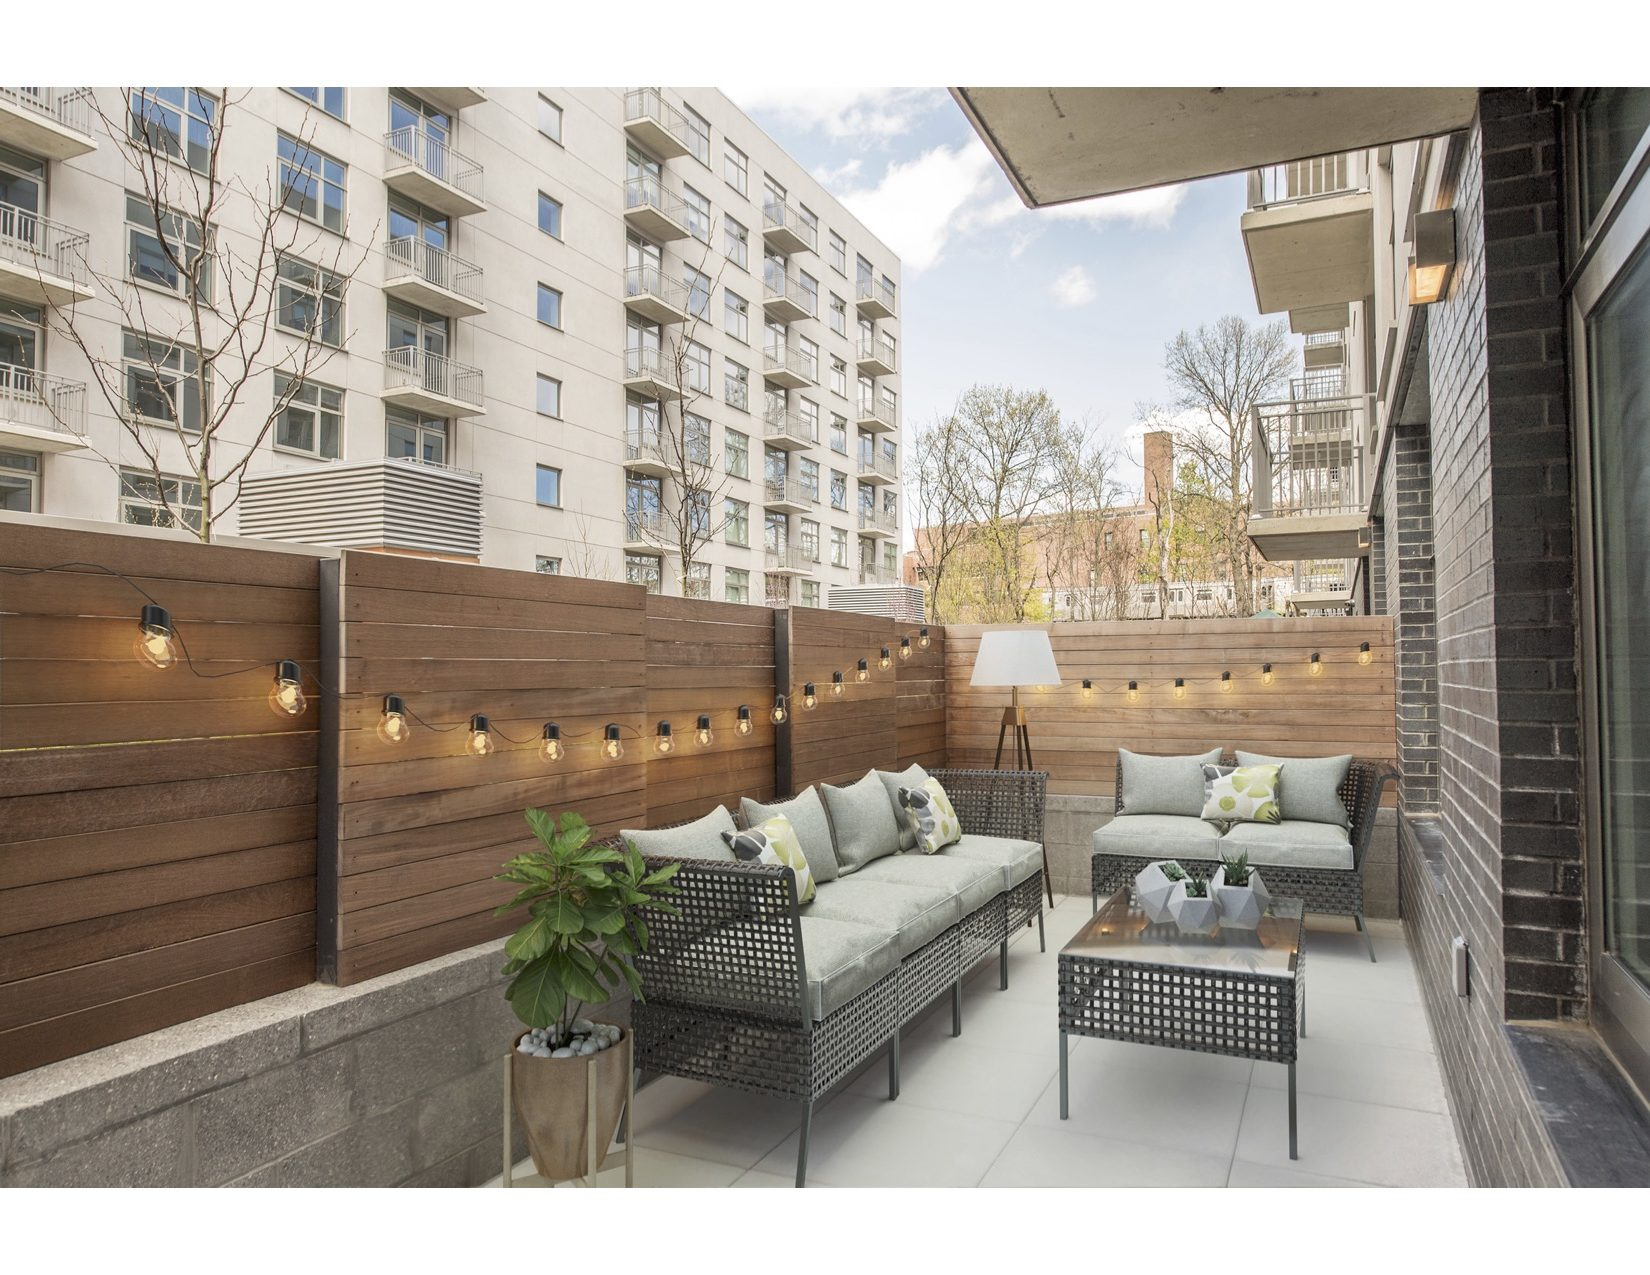 Private outdoor apartment patio with lights at the Vitagraph Brooklyn